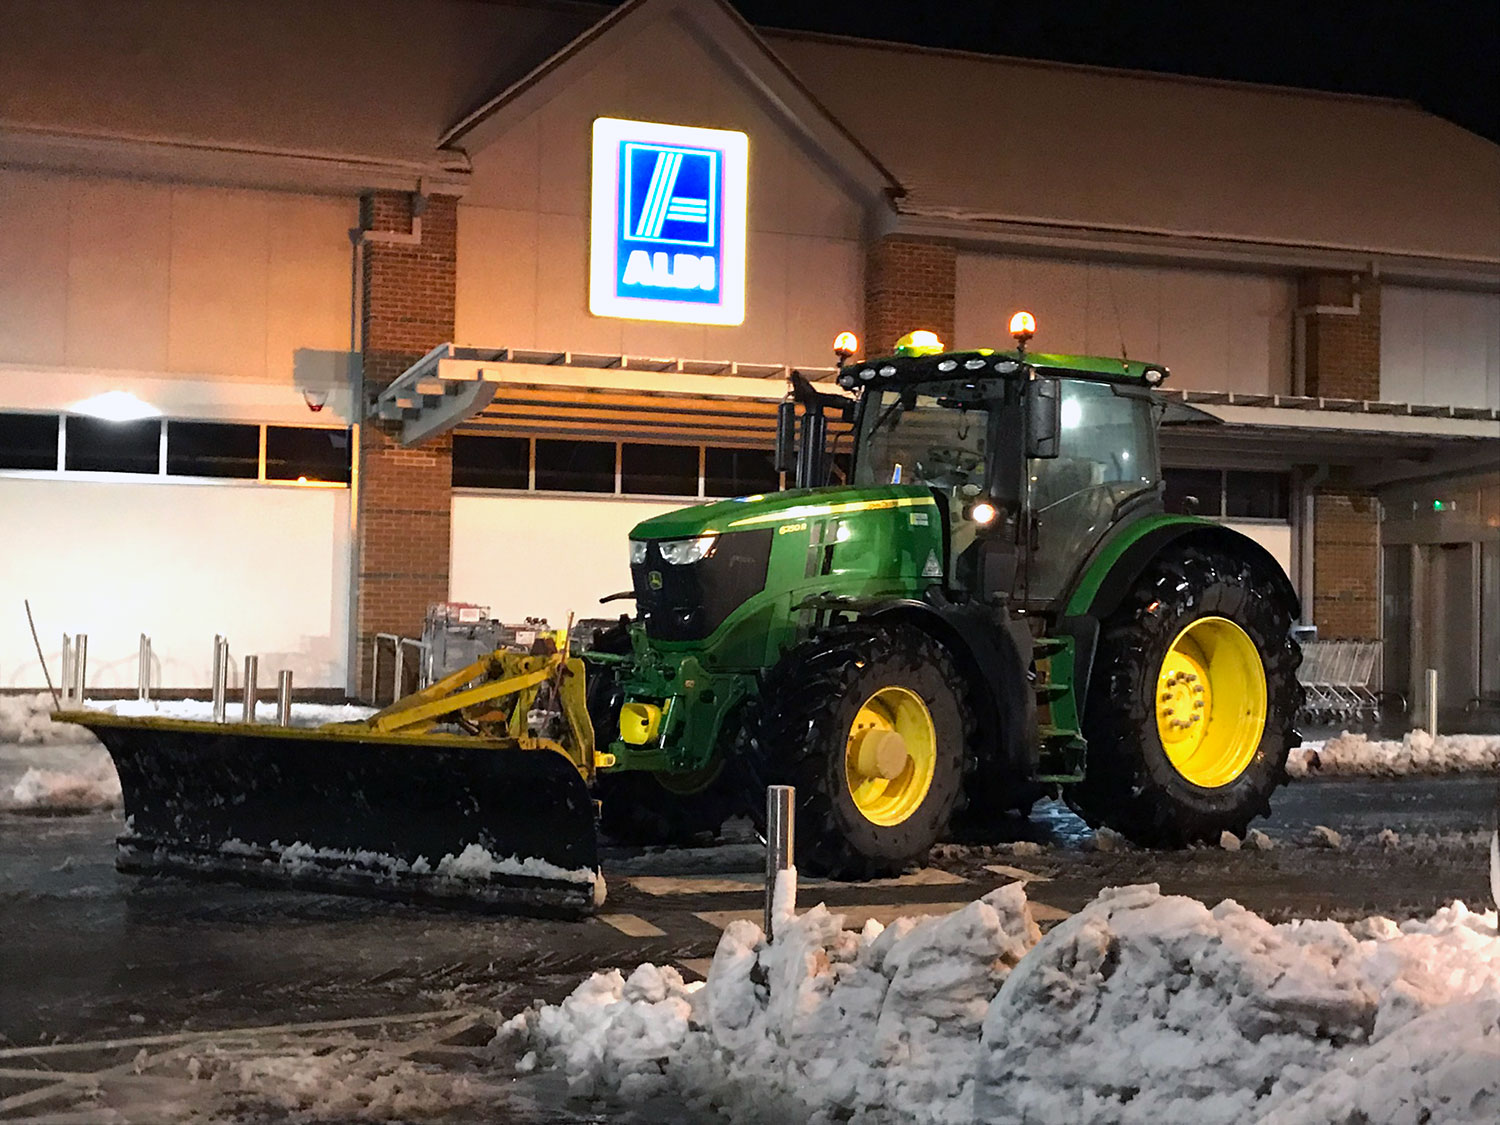 Gritting & Snow Clearing